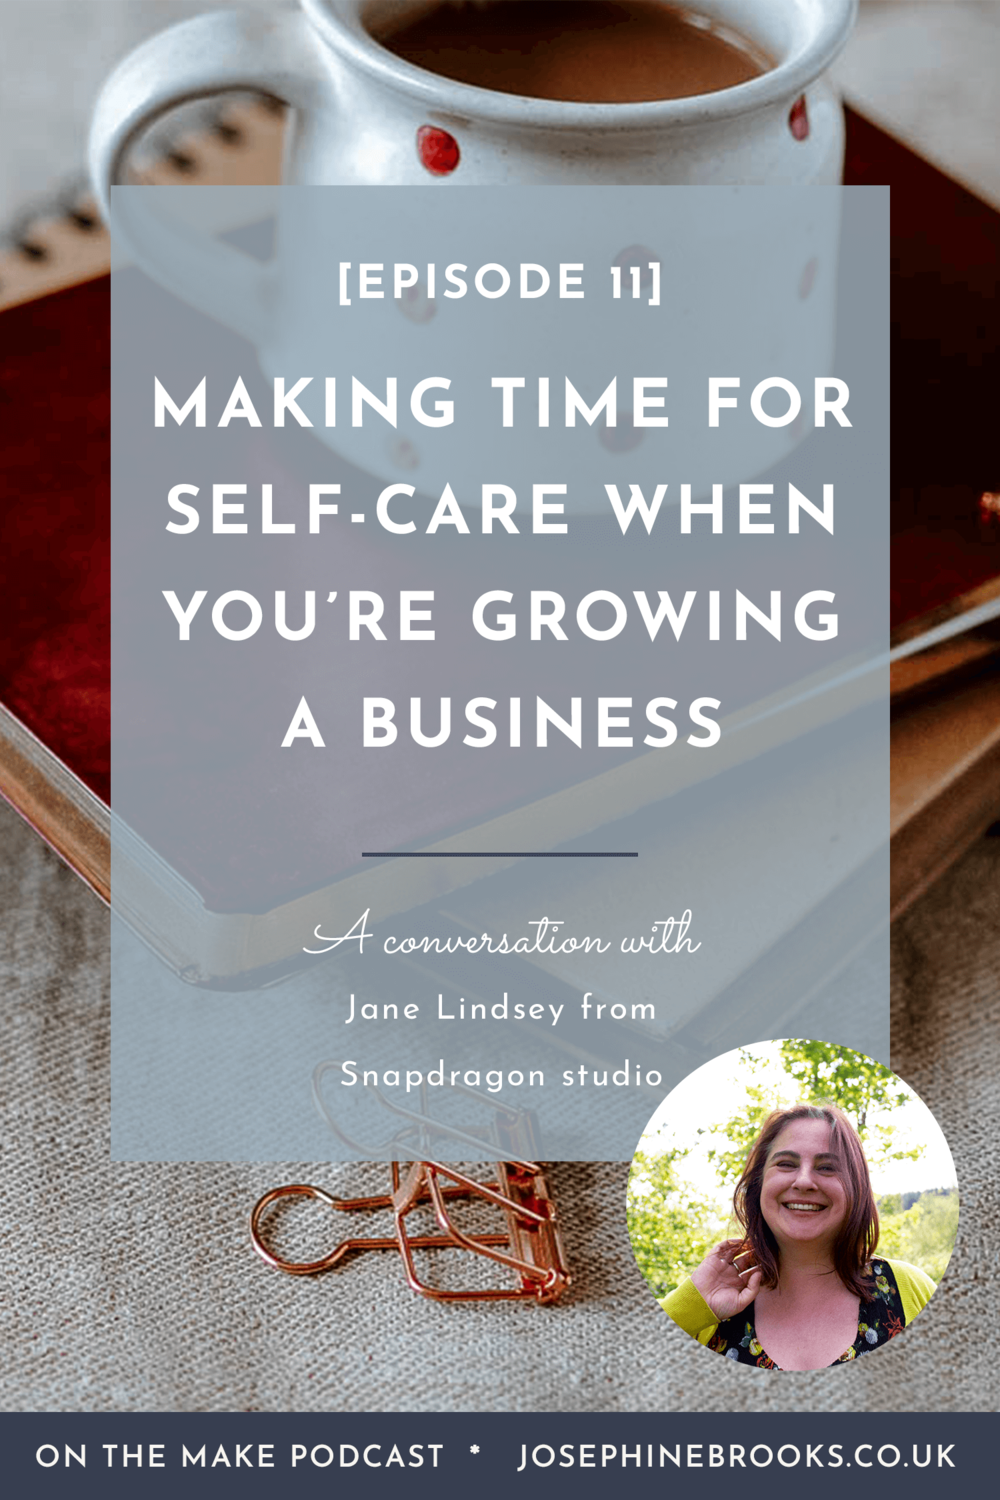 Making Time for Self-Care when you're growing a business, how to start living a slower lifestyle when you're building a business, Managing Addison's disease when you have a business